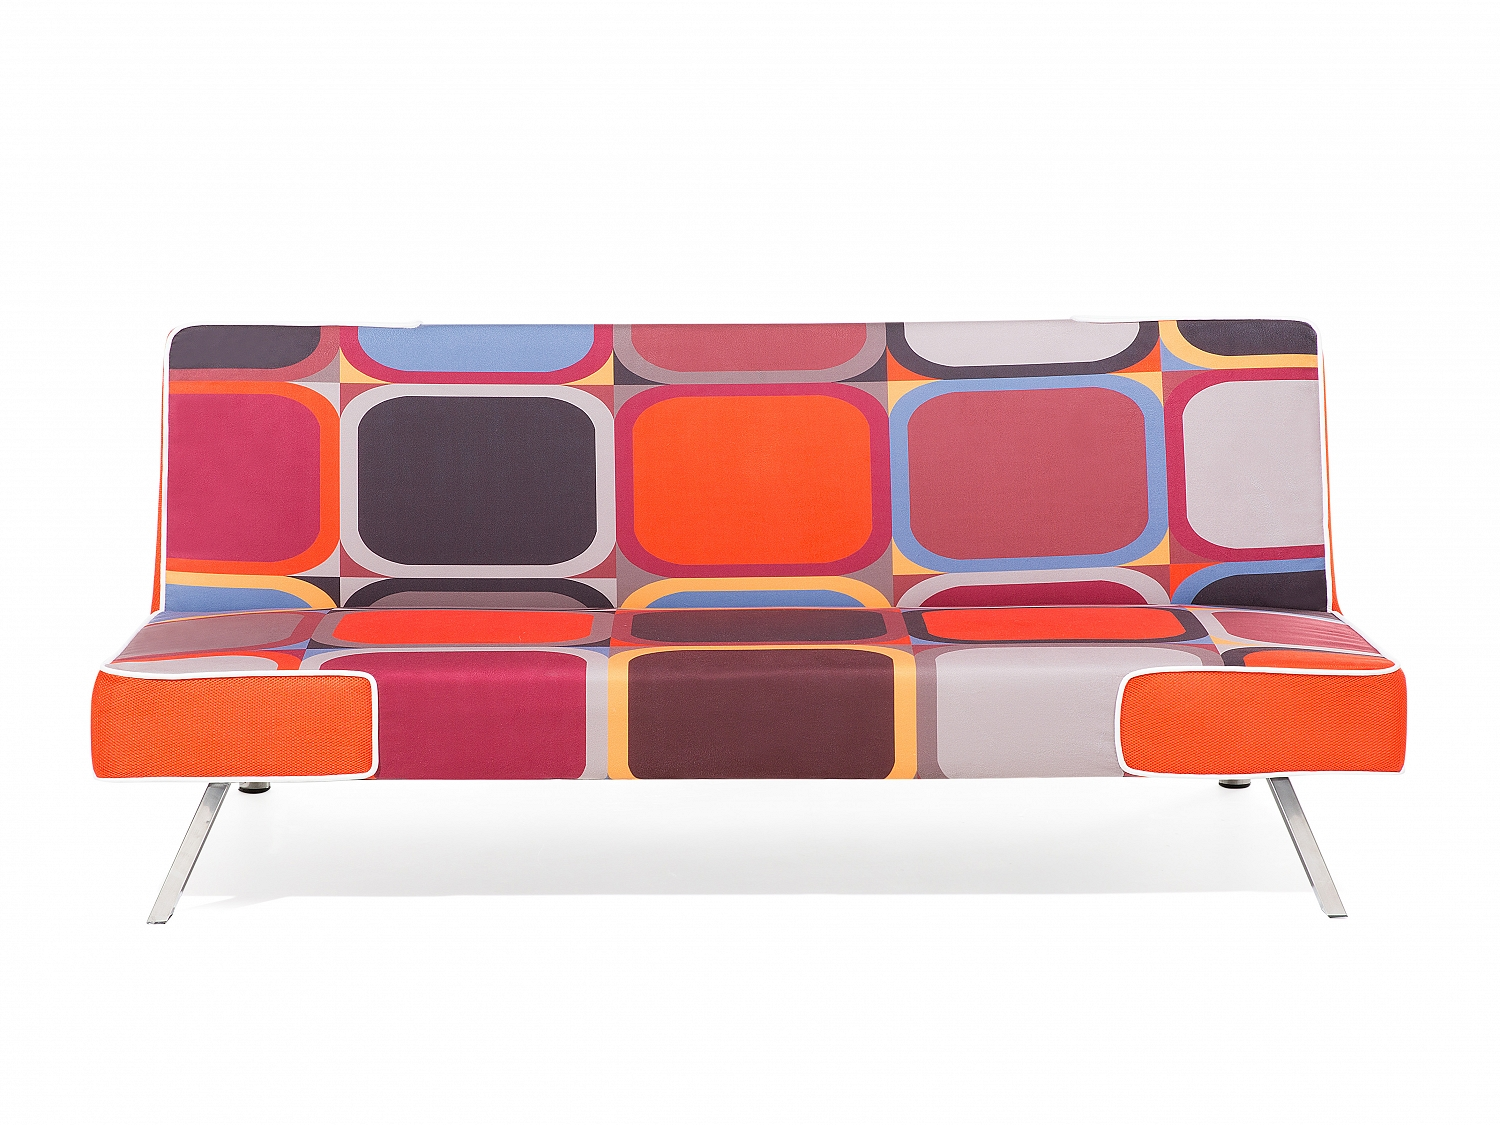 Sofa patchwork schlafsofa couch schlafcouch bettsofa for Schlafsofa patchwork